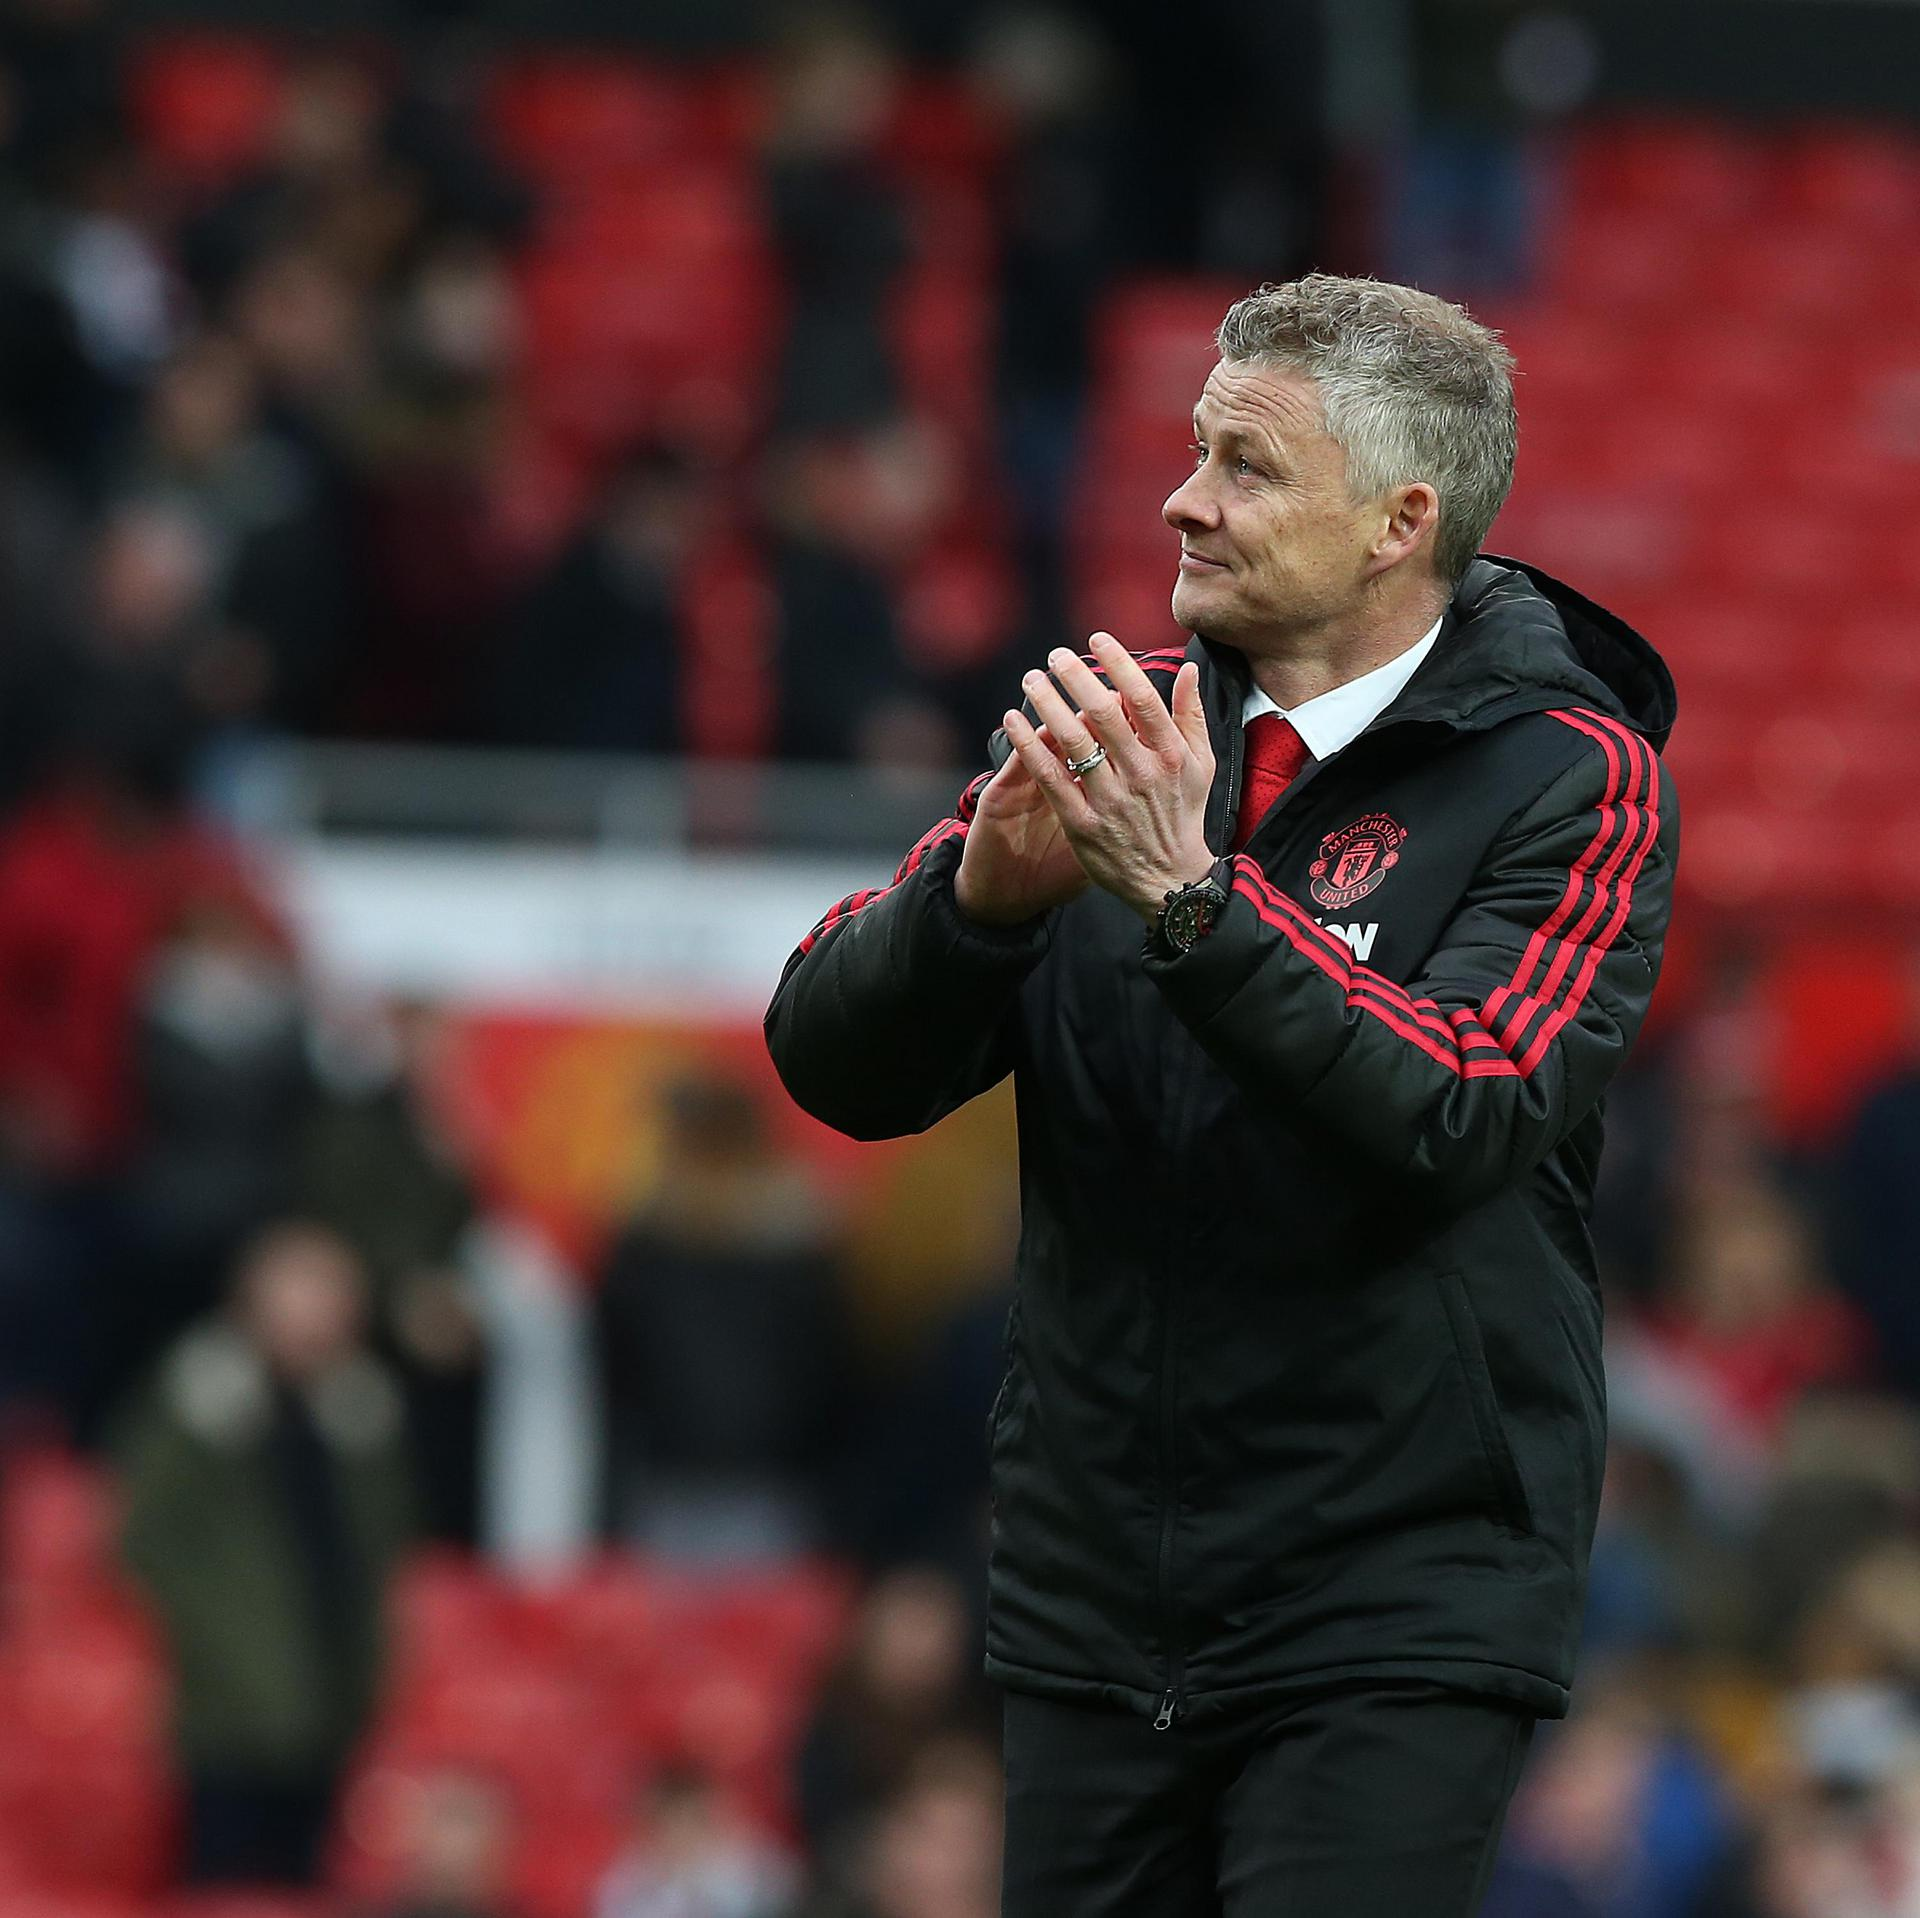 Ole Gunnar Solskjaer applauds the fans at full-time in the West Ham game